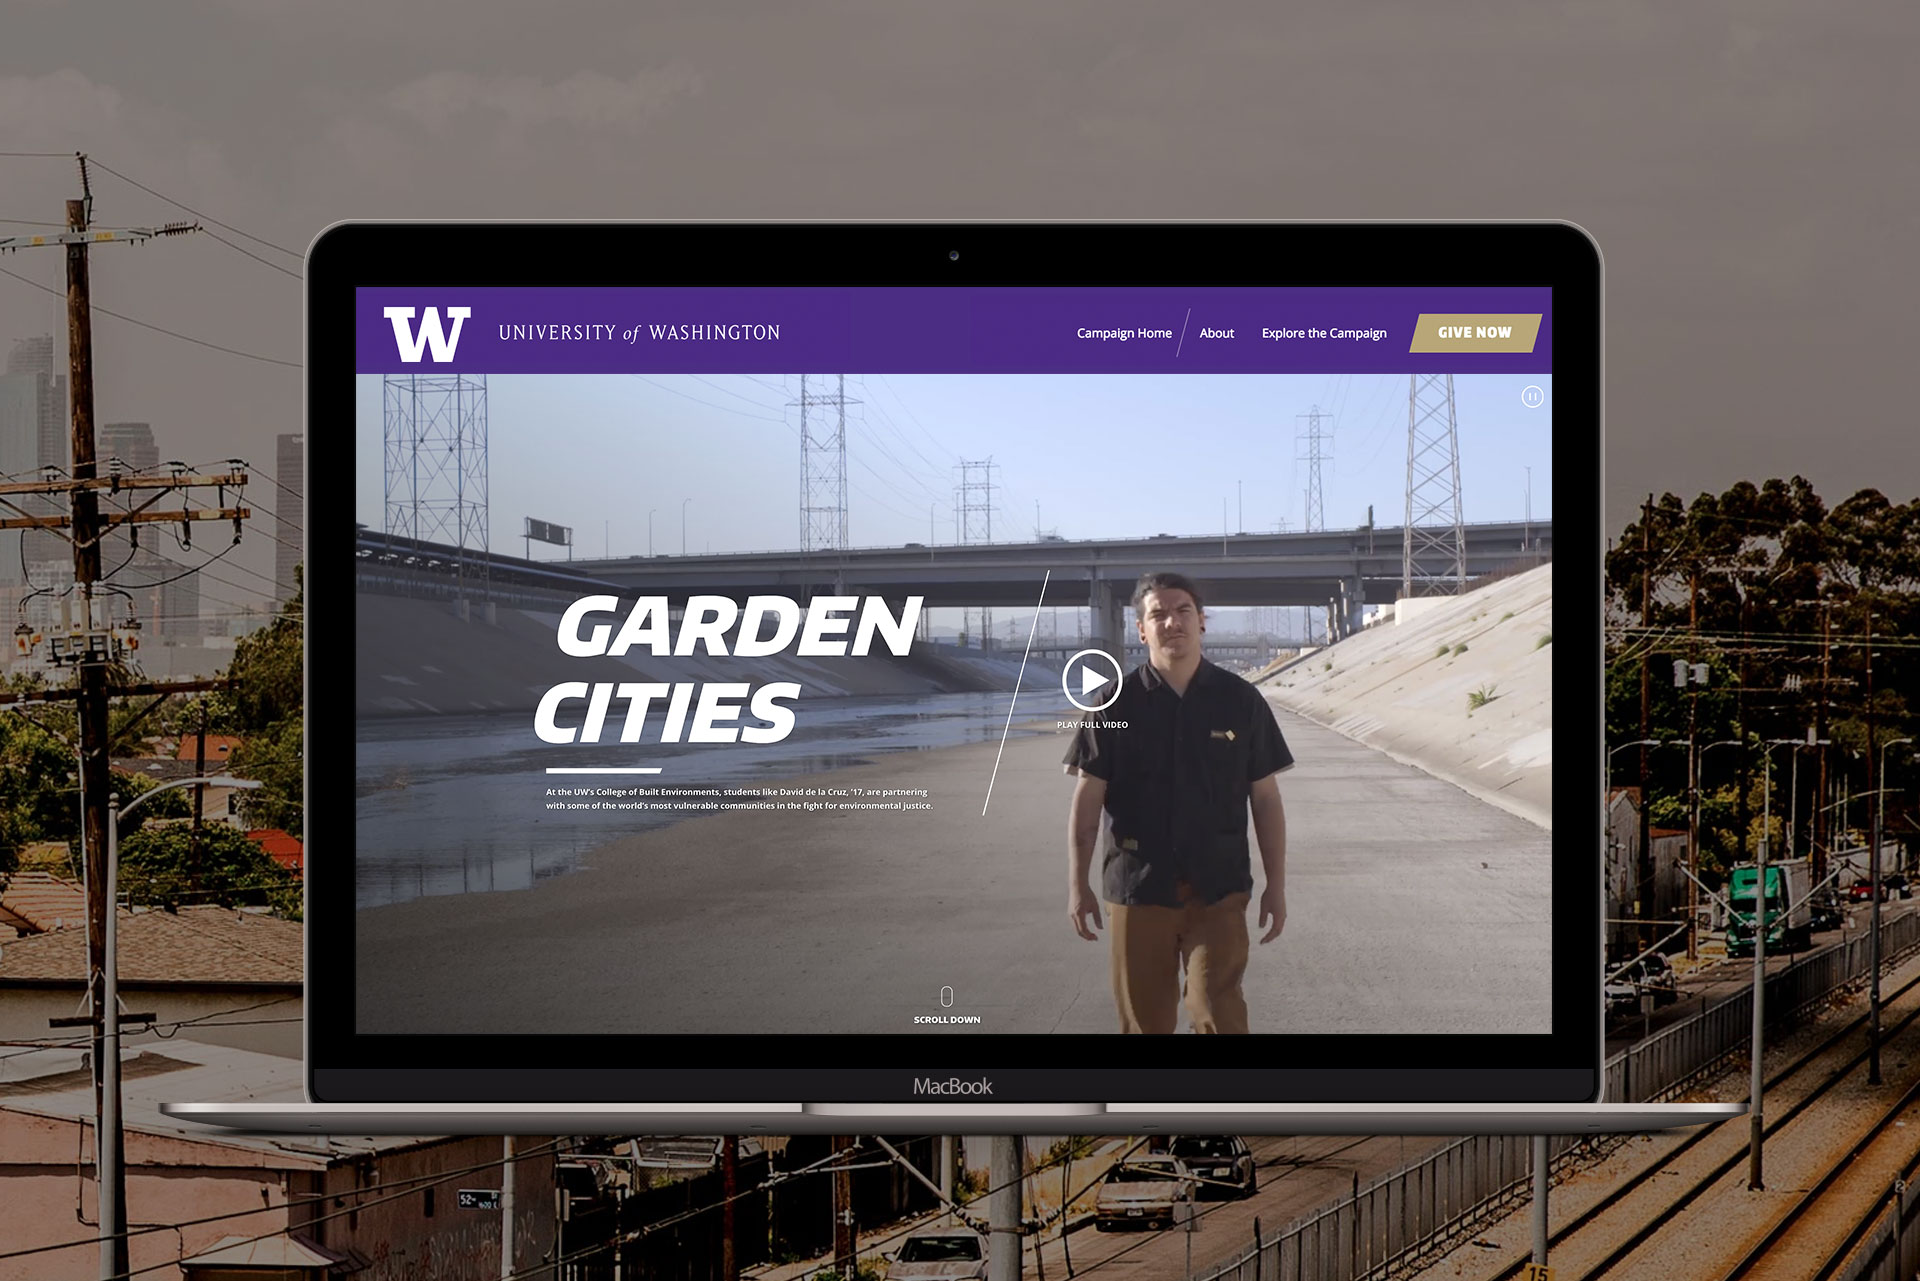 university of washington college of biult environment website mockup